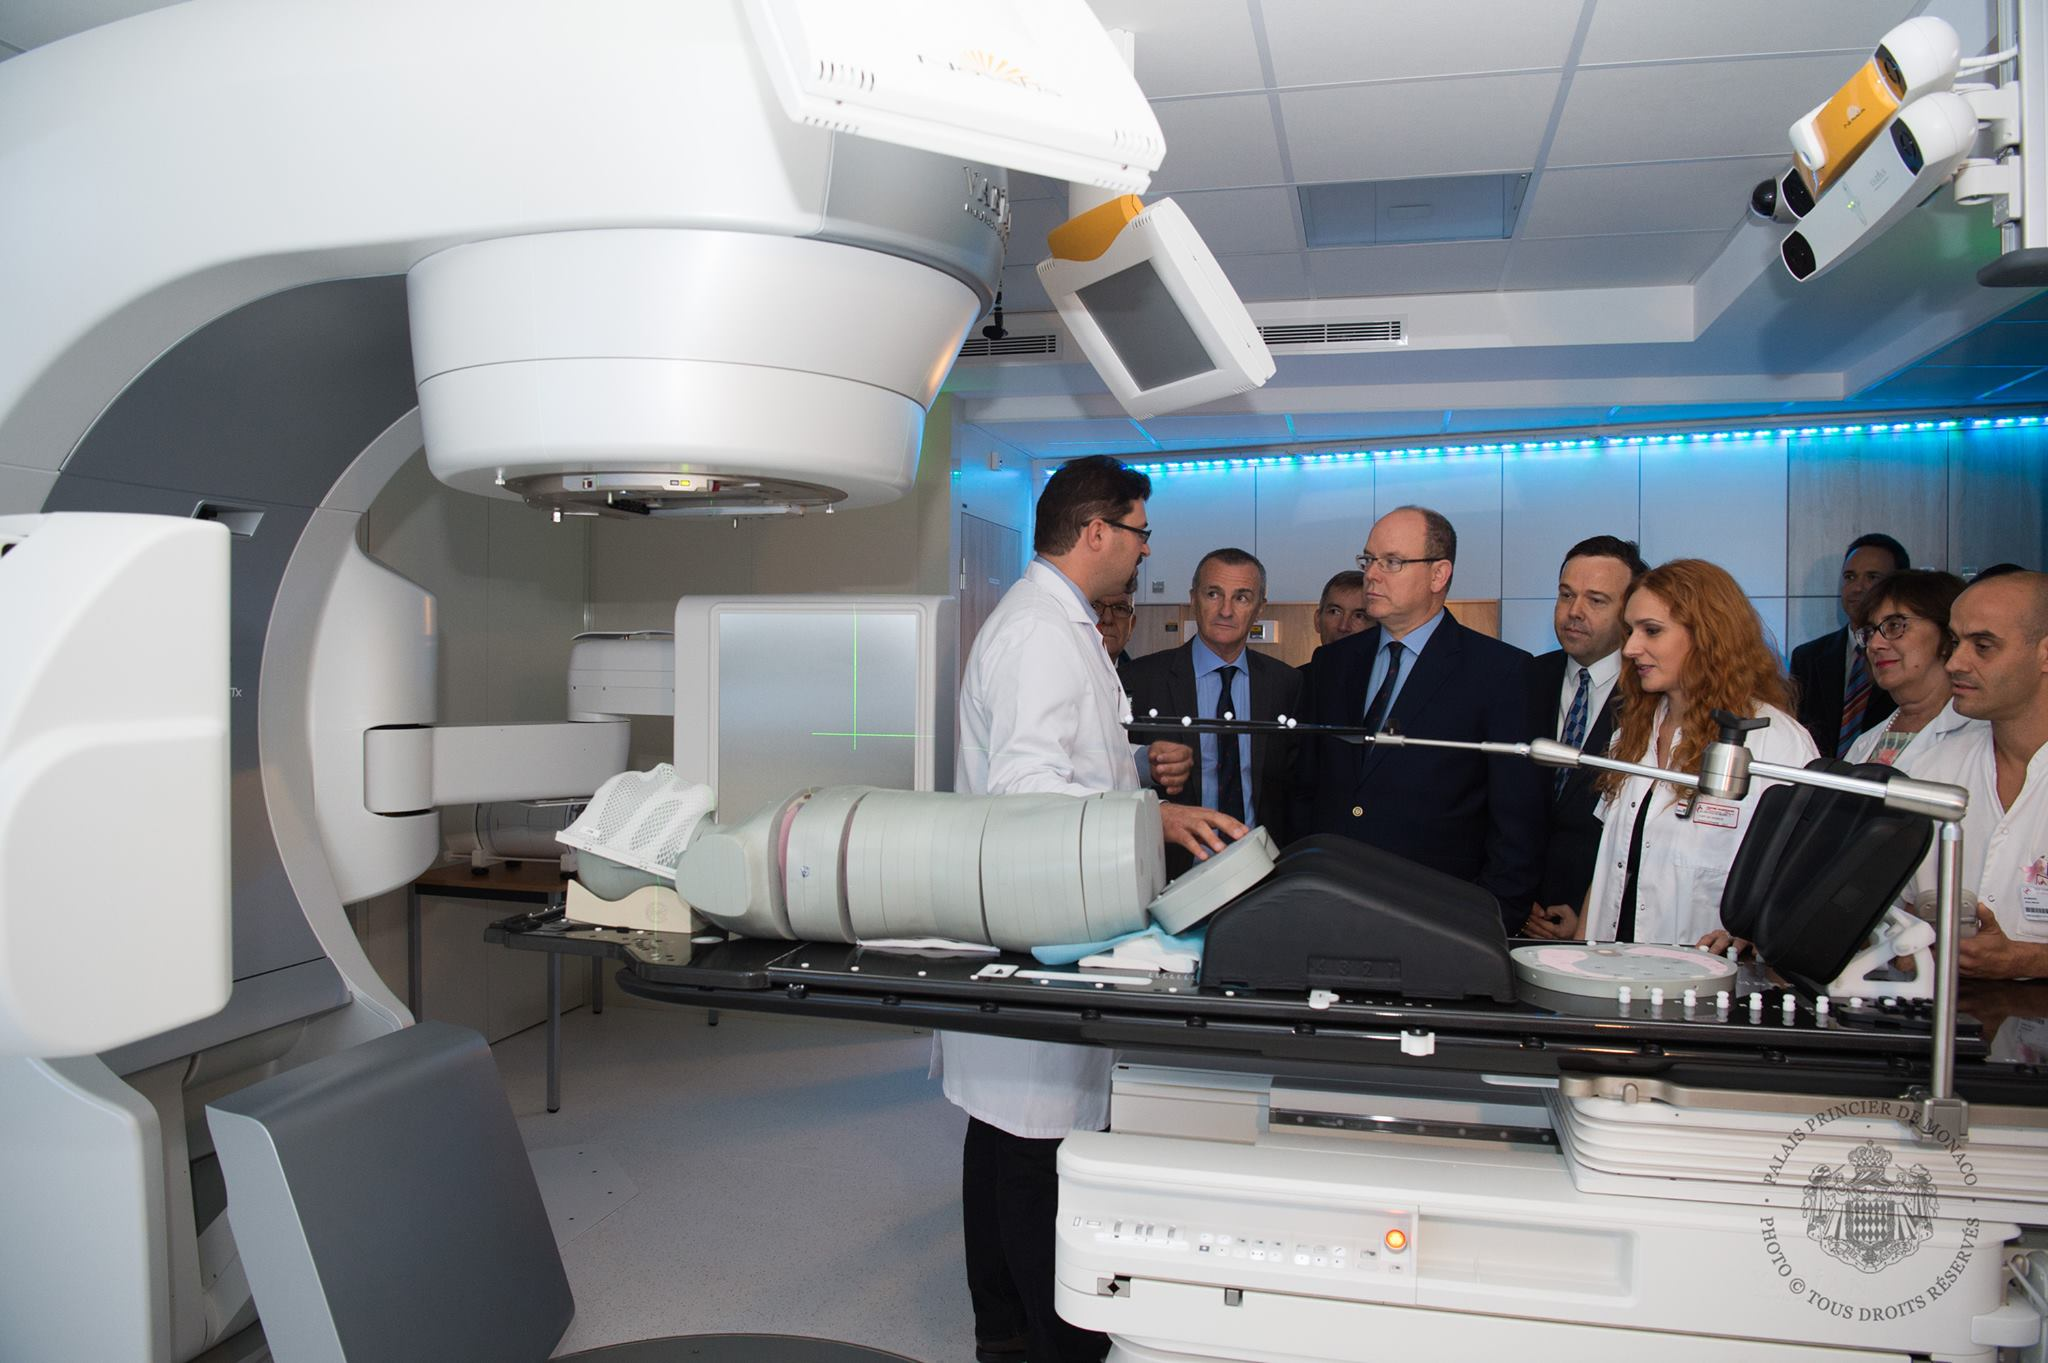 11 mln euro investment in cancer treatment